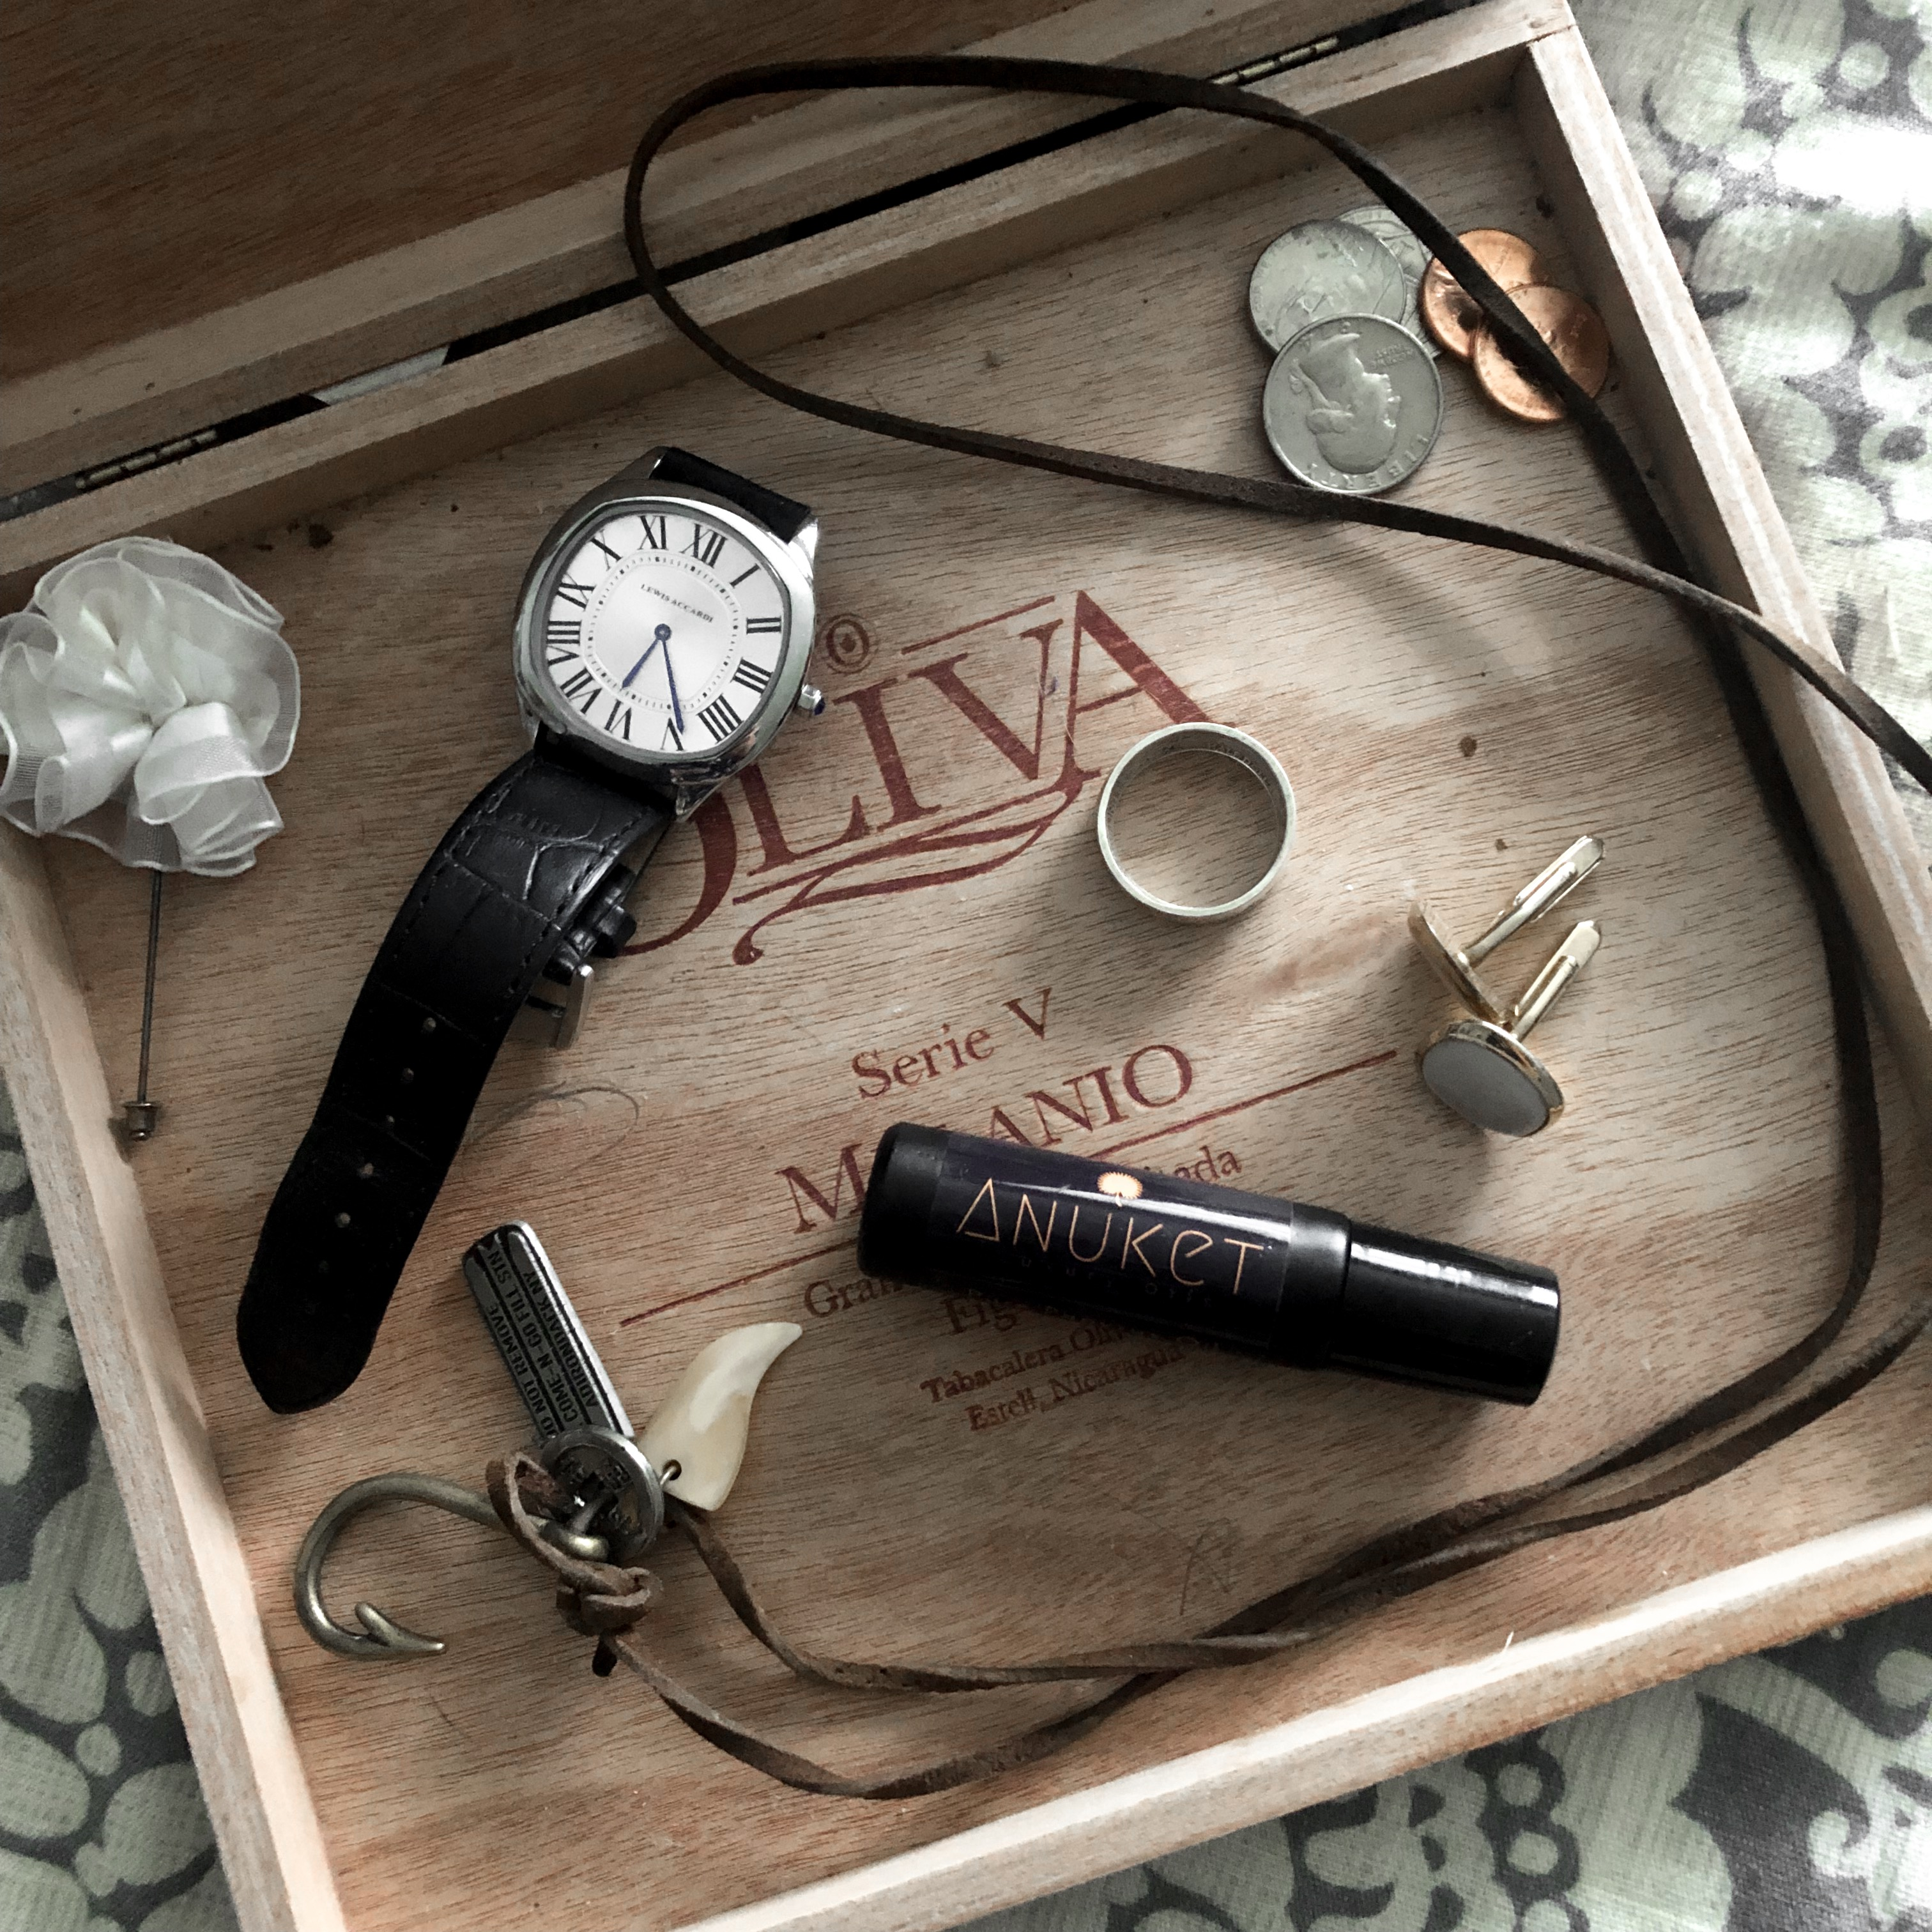 Anuket matte black rollerball in a wooden keepsake box surrounded by a leather pendant, a watch, coins, and other knick knacks